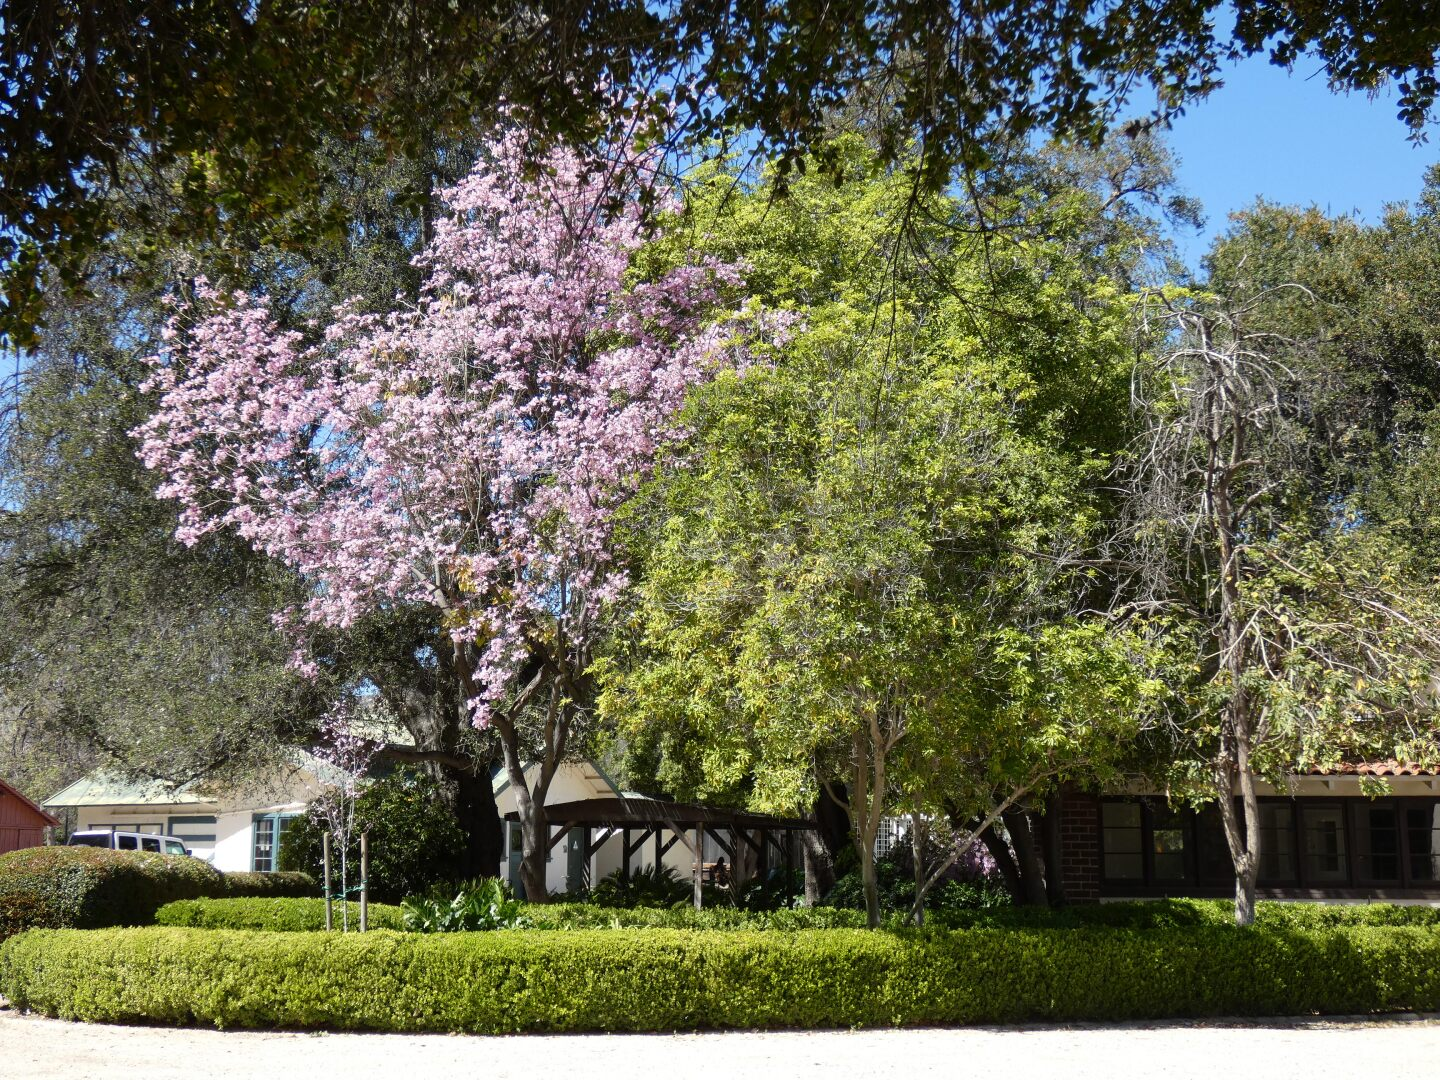 Pink trumpet trees along with other large towering greenery covers buildings at Orcutt Ranch.